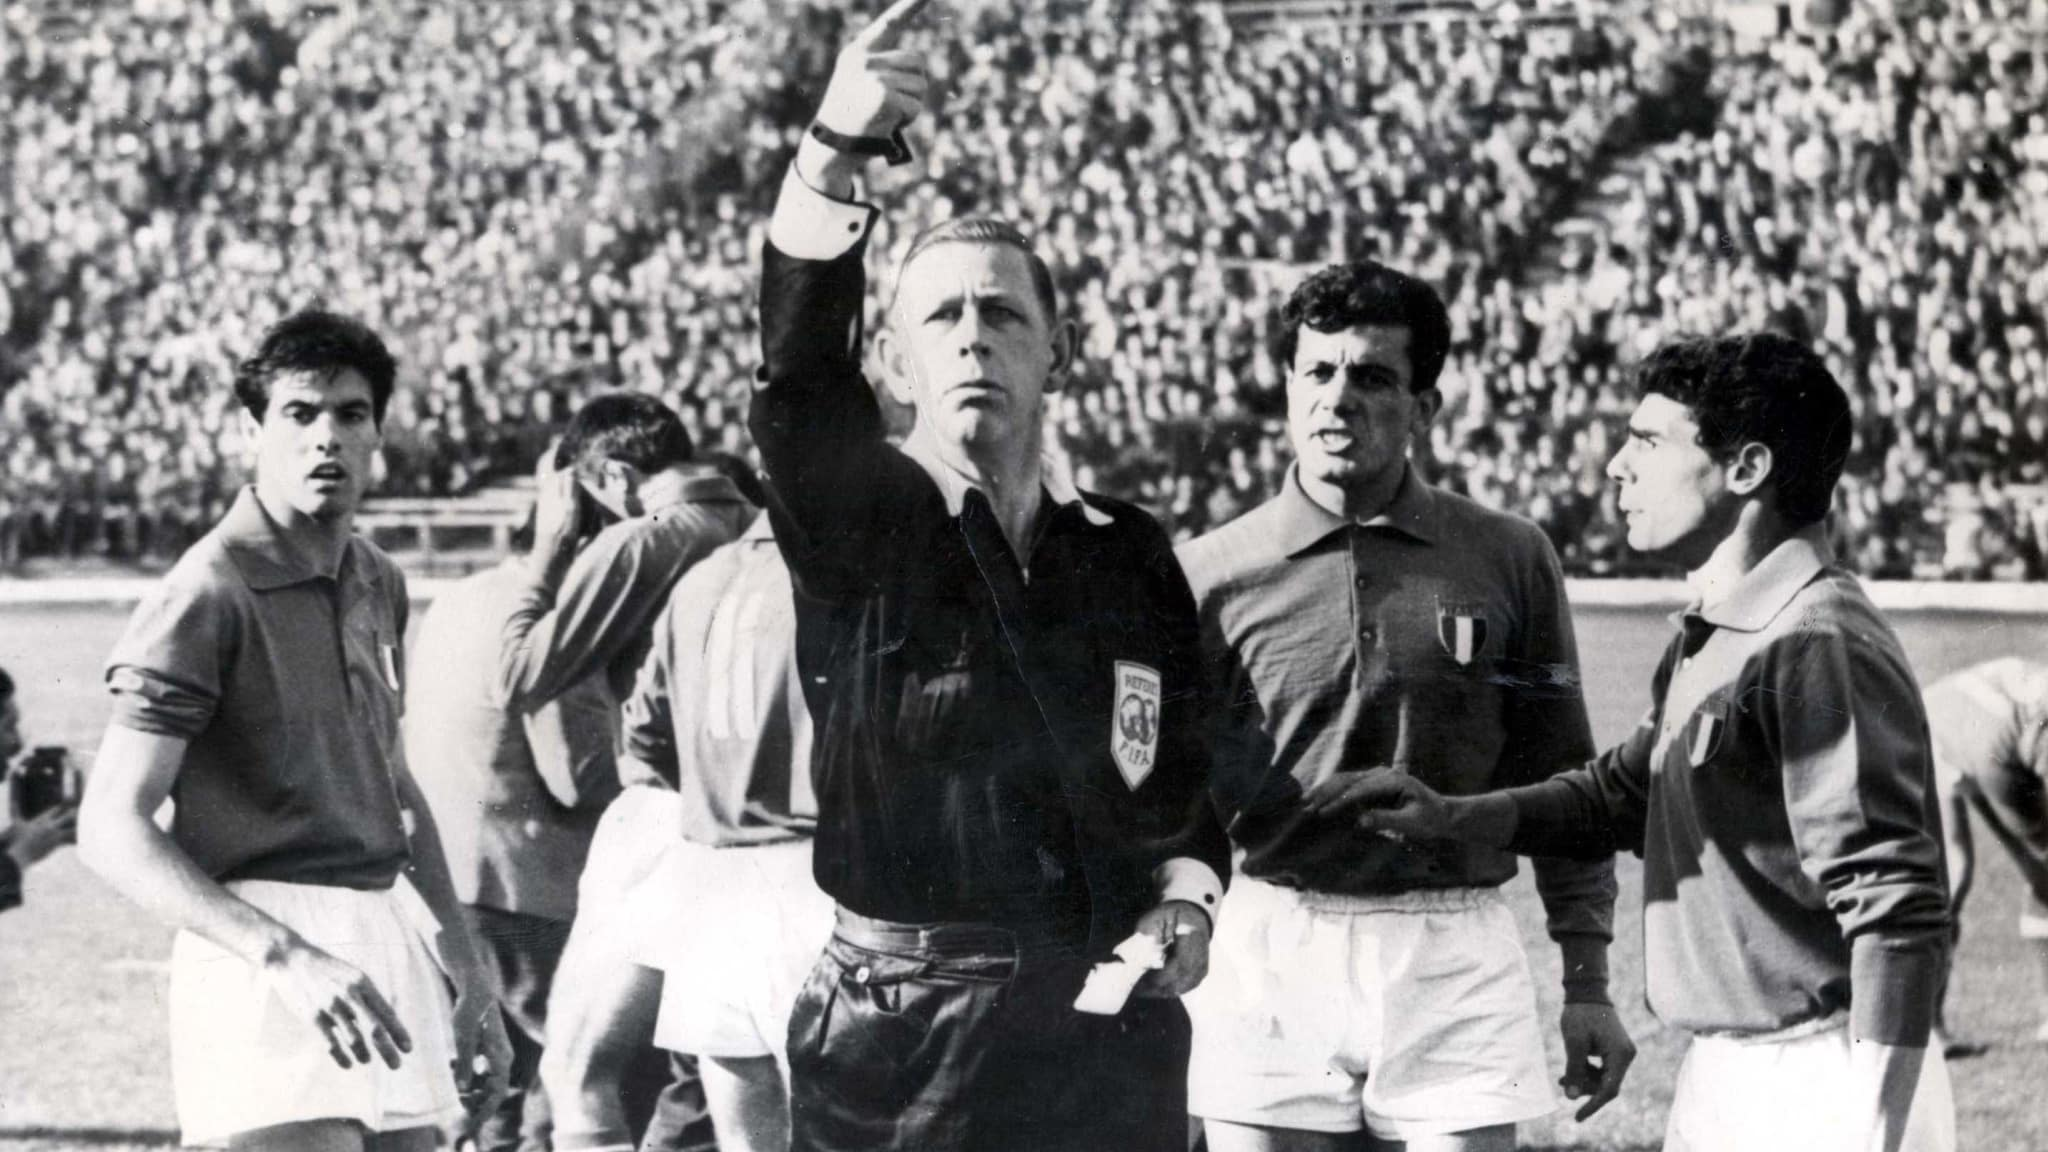 A moment from the game between Chile and Italy in the 1962 World Cup